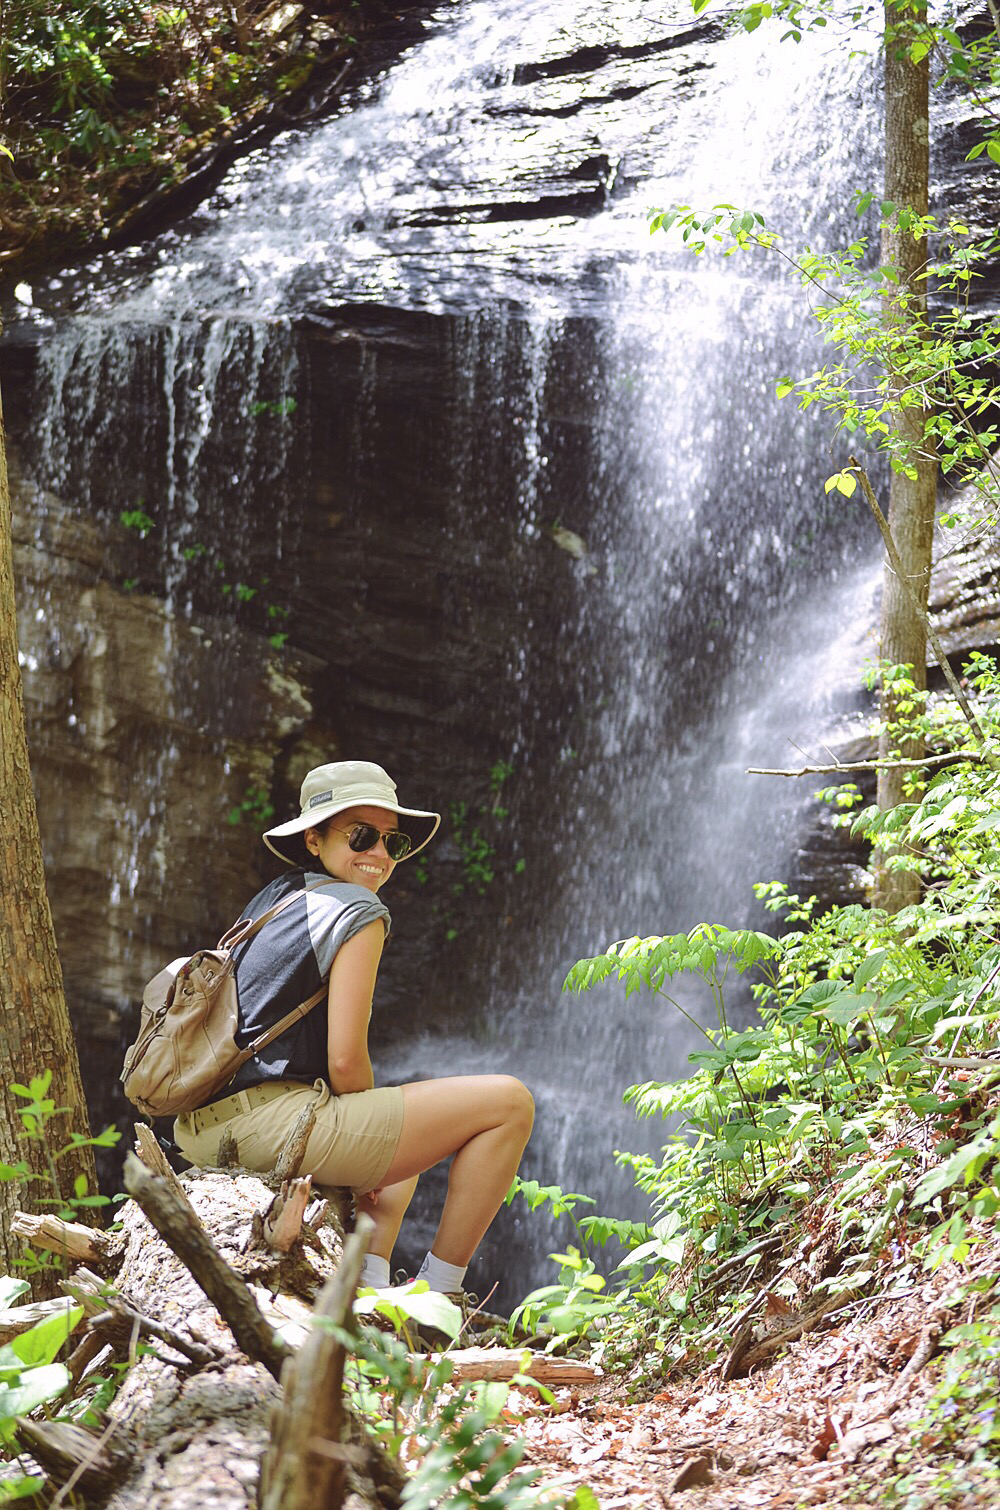 Hiking in Pisgah Forest